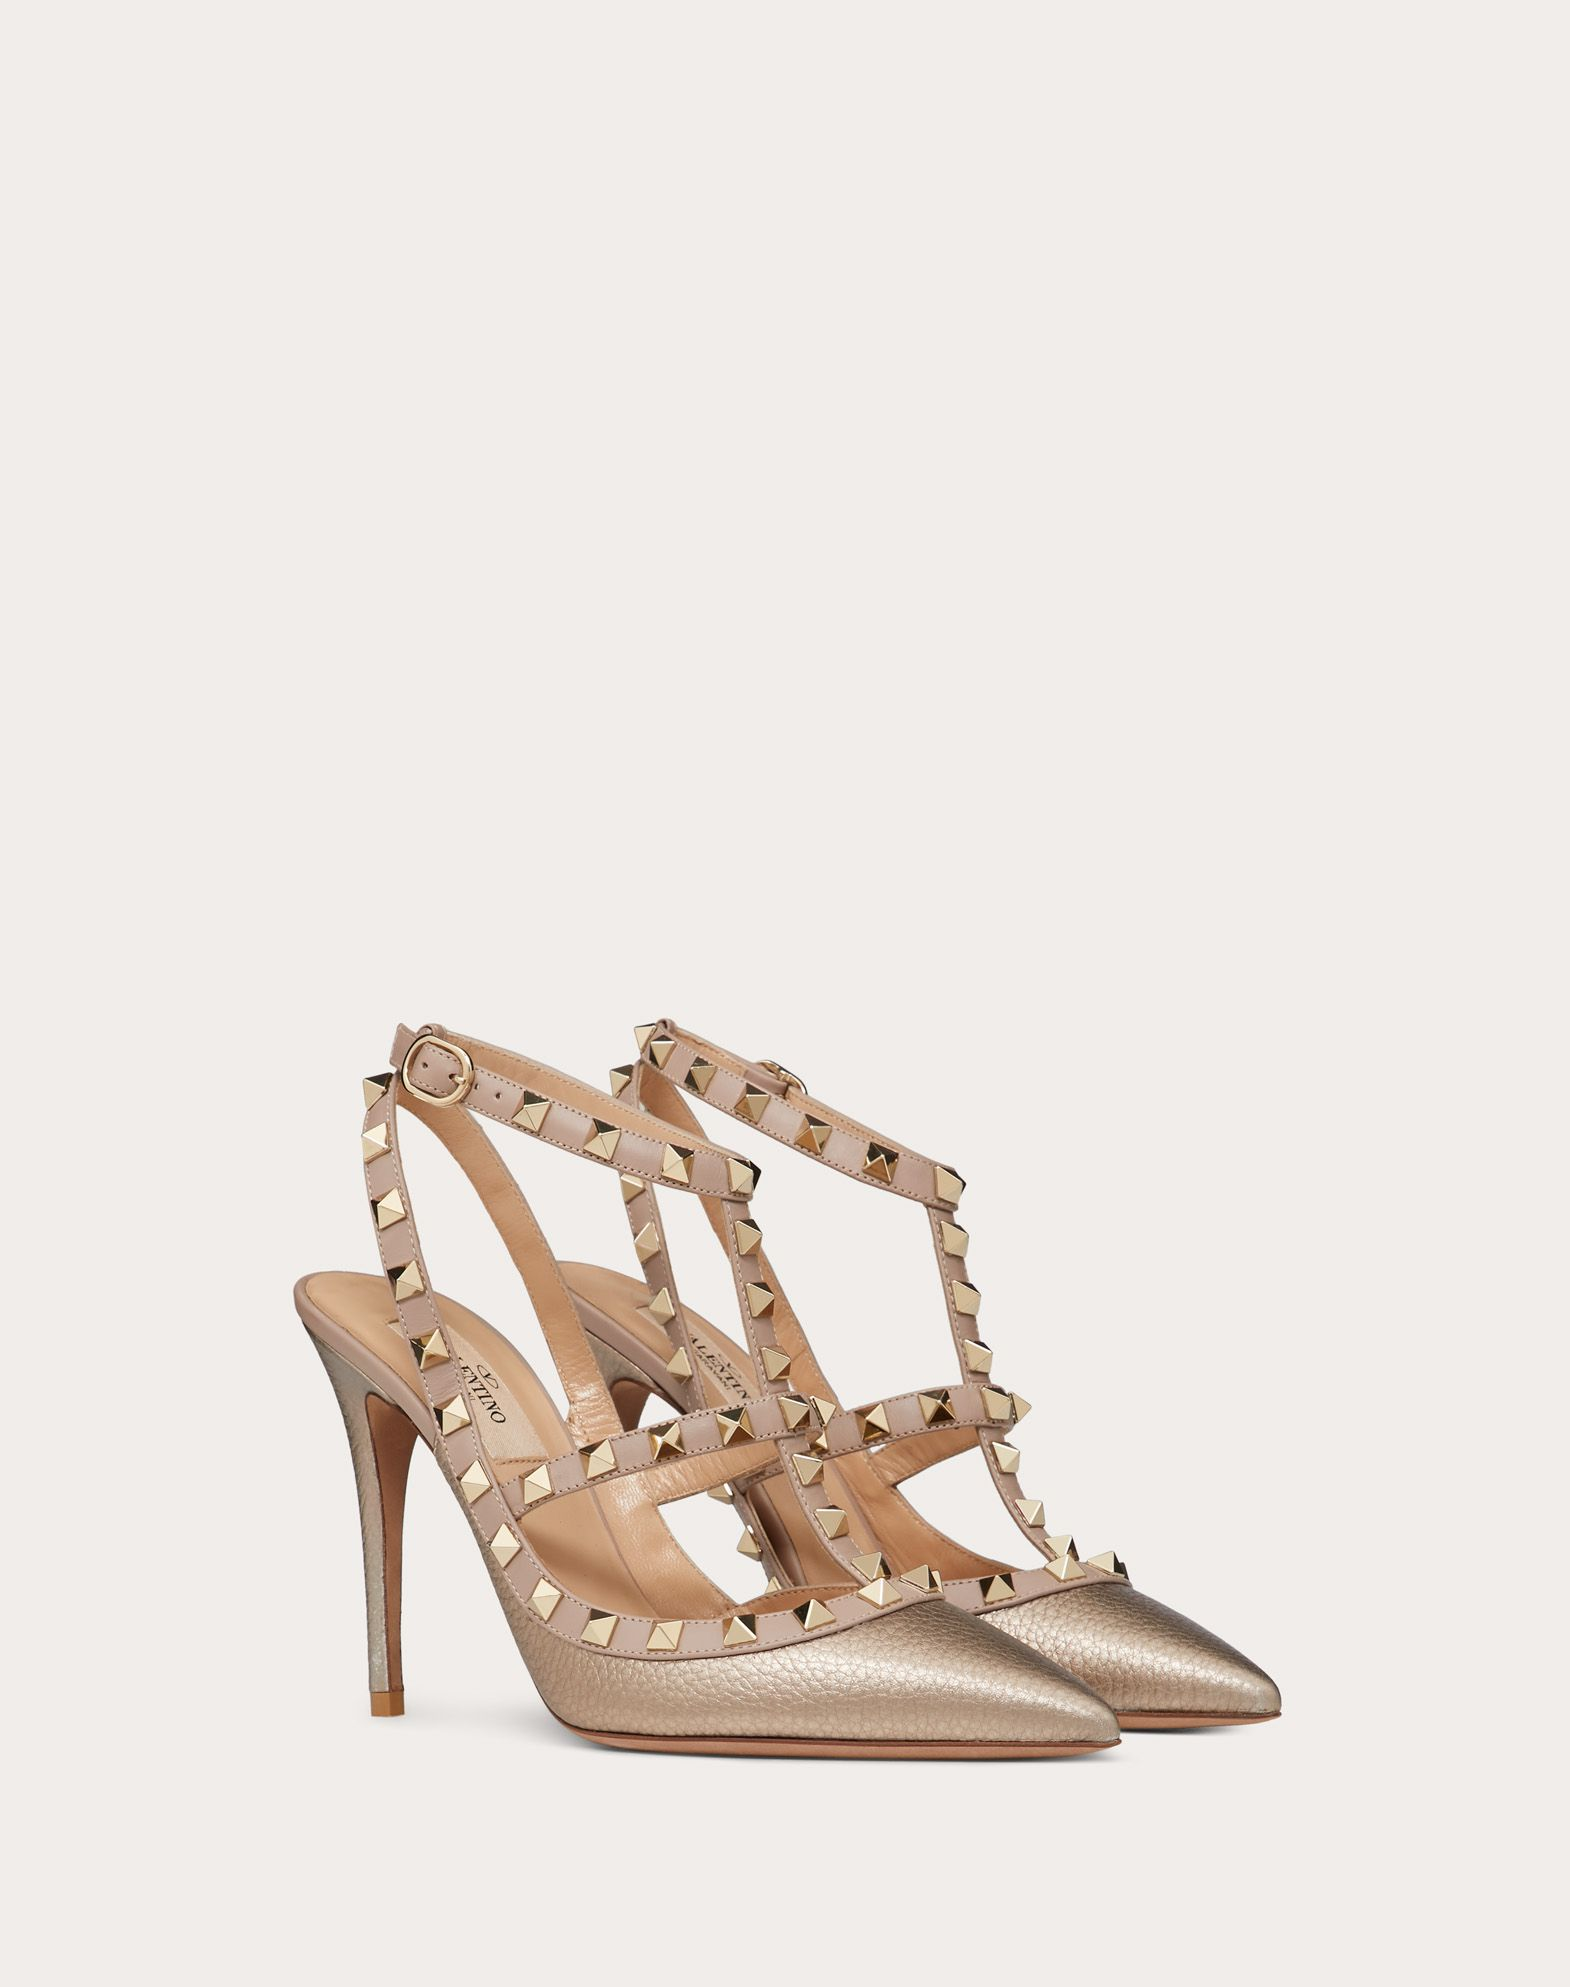 VALENTINO Spike heel Studs Buckling ankle strap closure Narrow toeline Leather lining Leather sole  11052392db